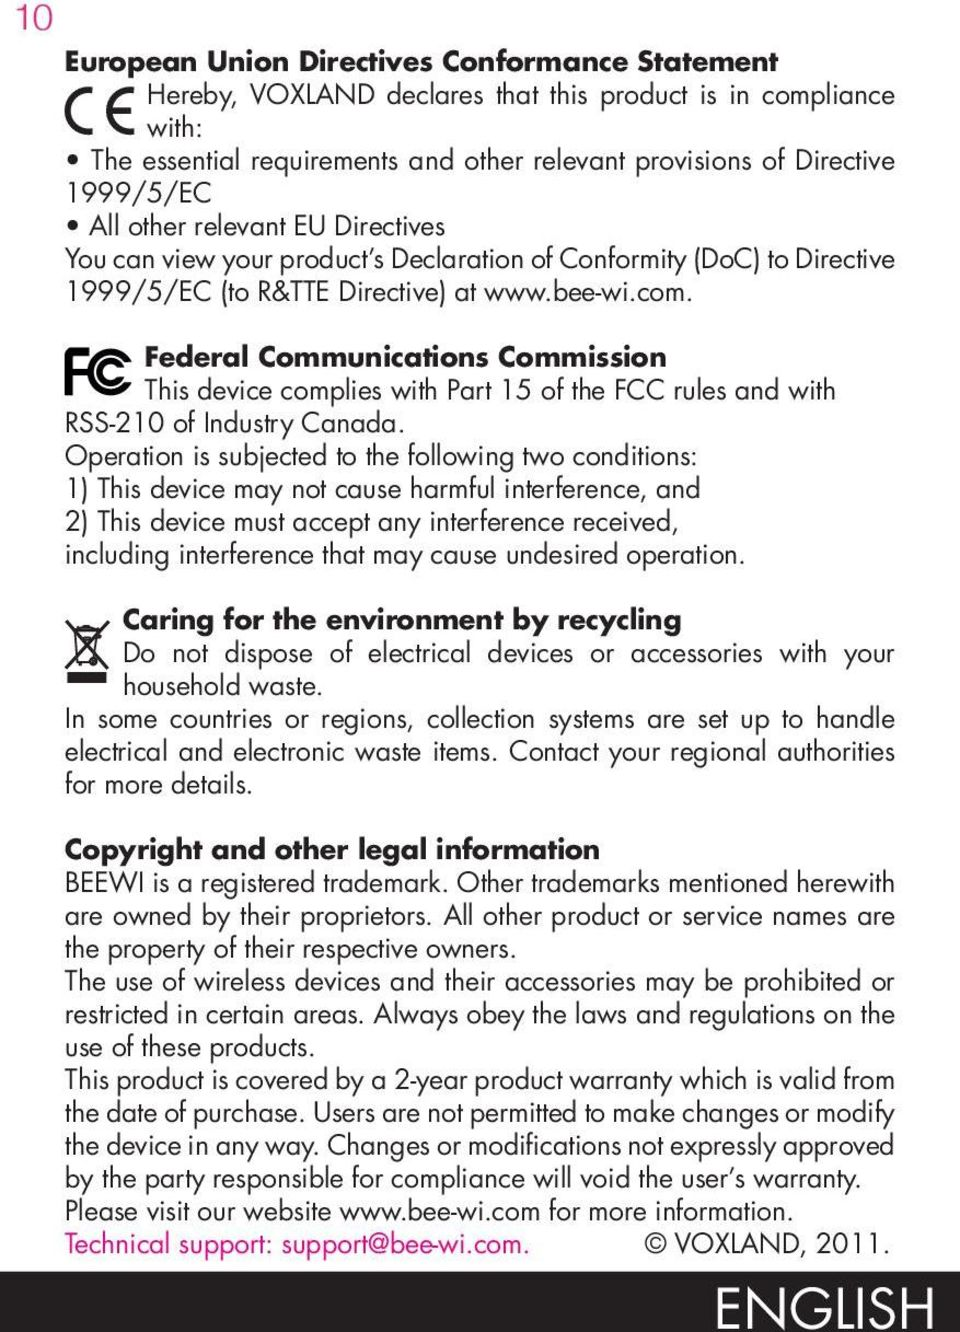 Federal Communications Commission This device complies with Part 15 of the FCC rules and with RSS-210 of Industry Canada.